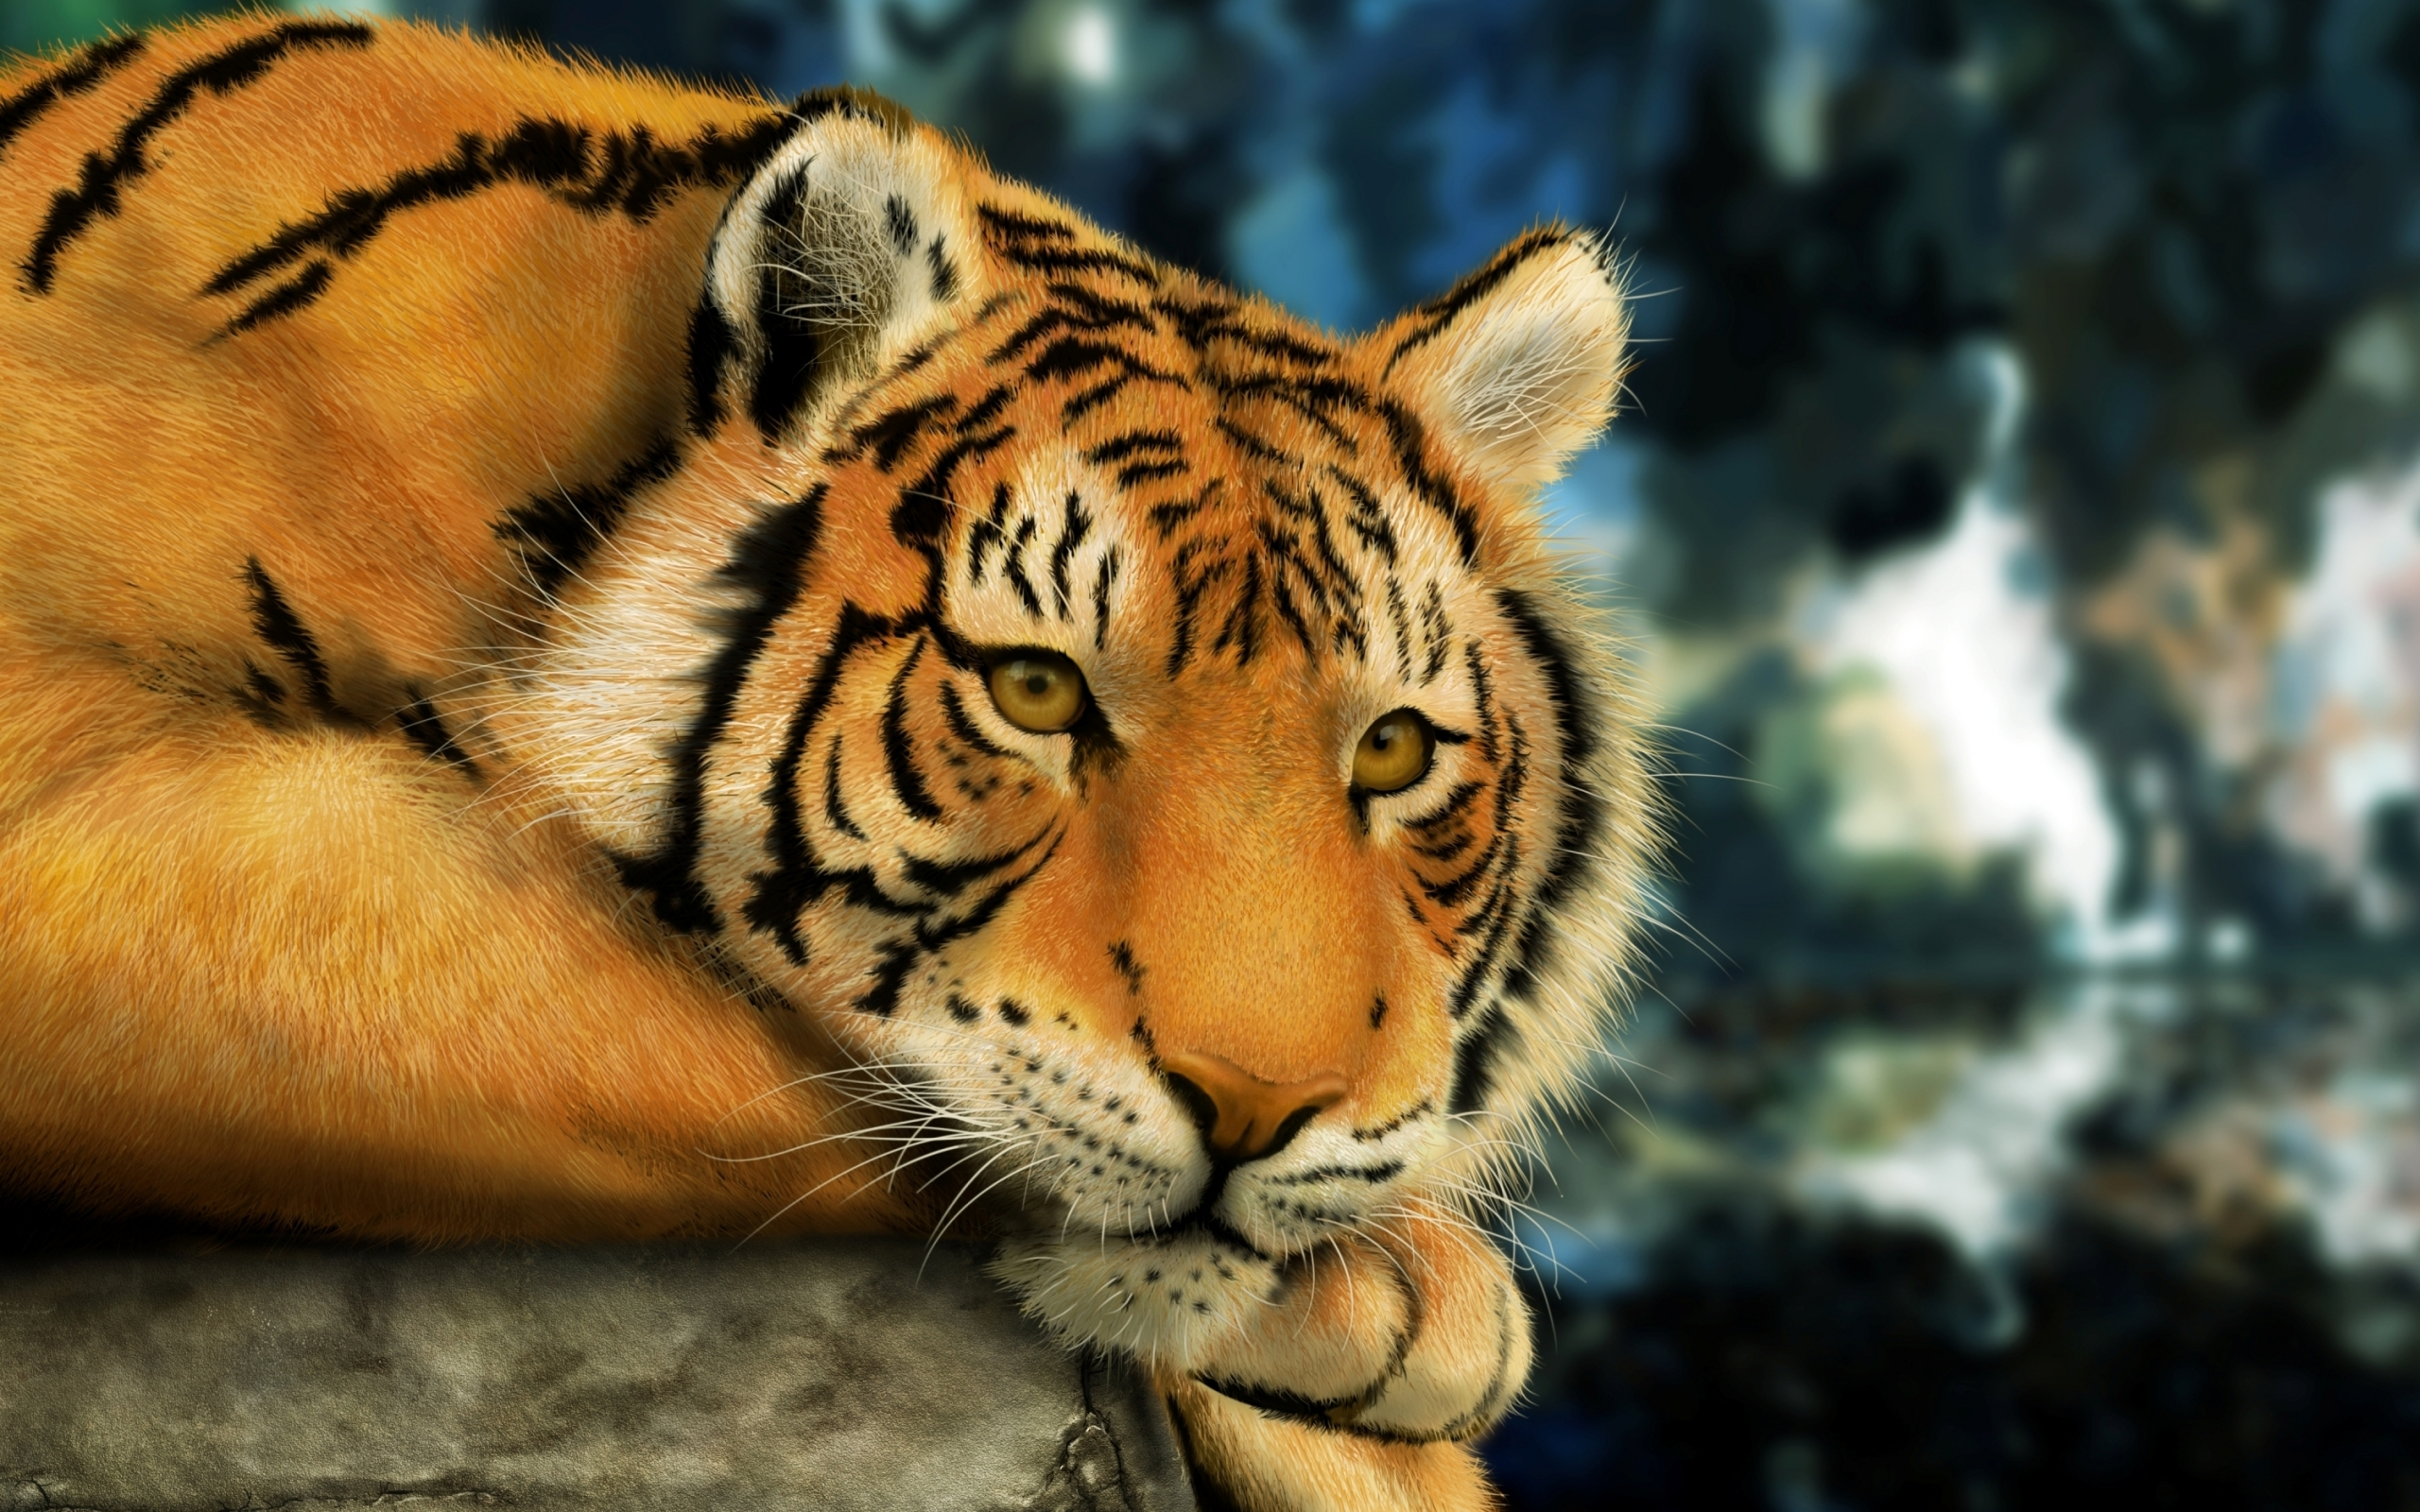 39770 download wallpaper Animals, Tigers screensavers and pictures for free